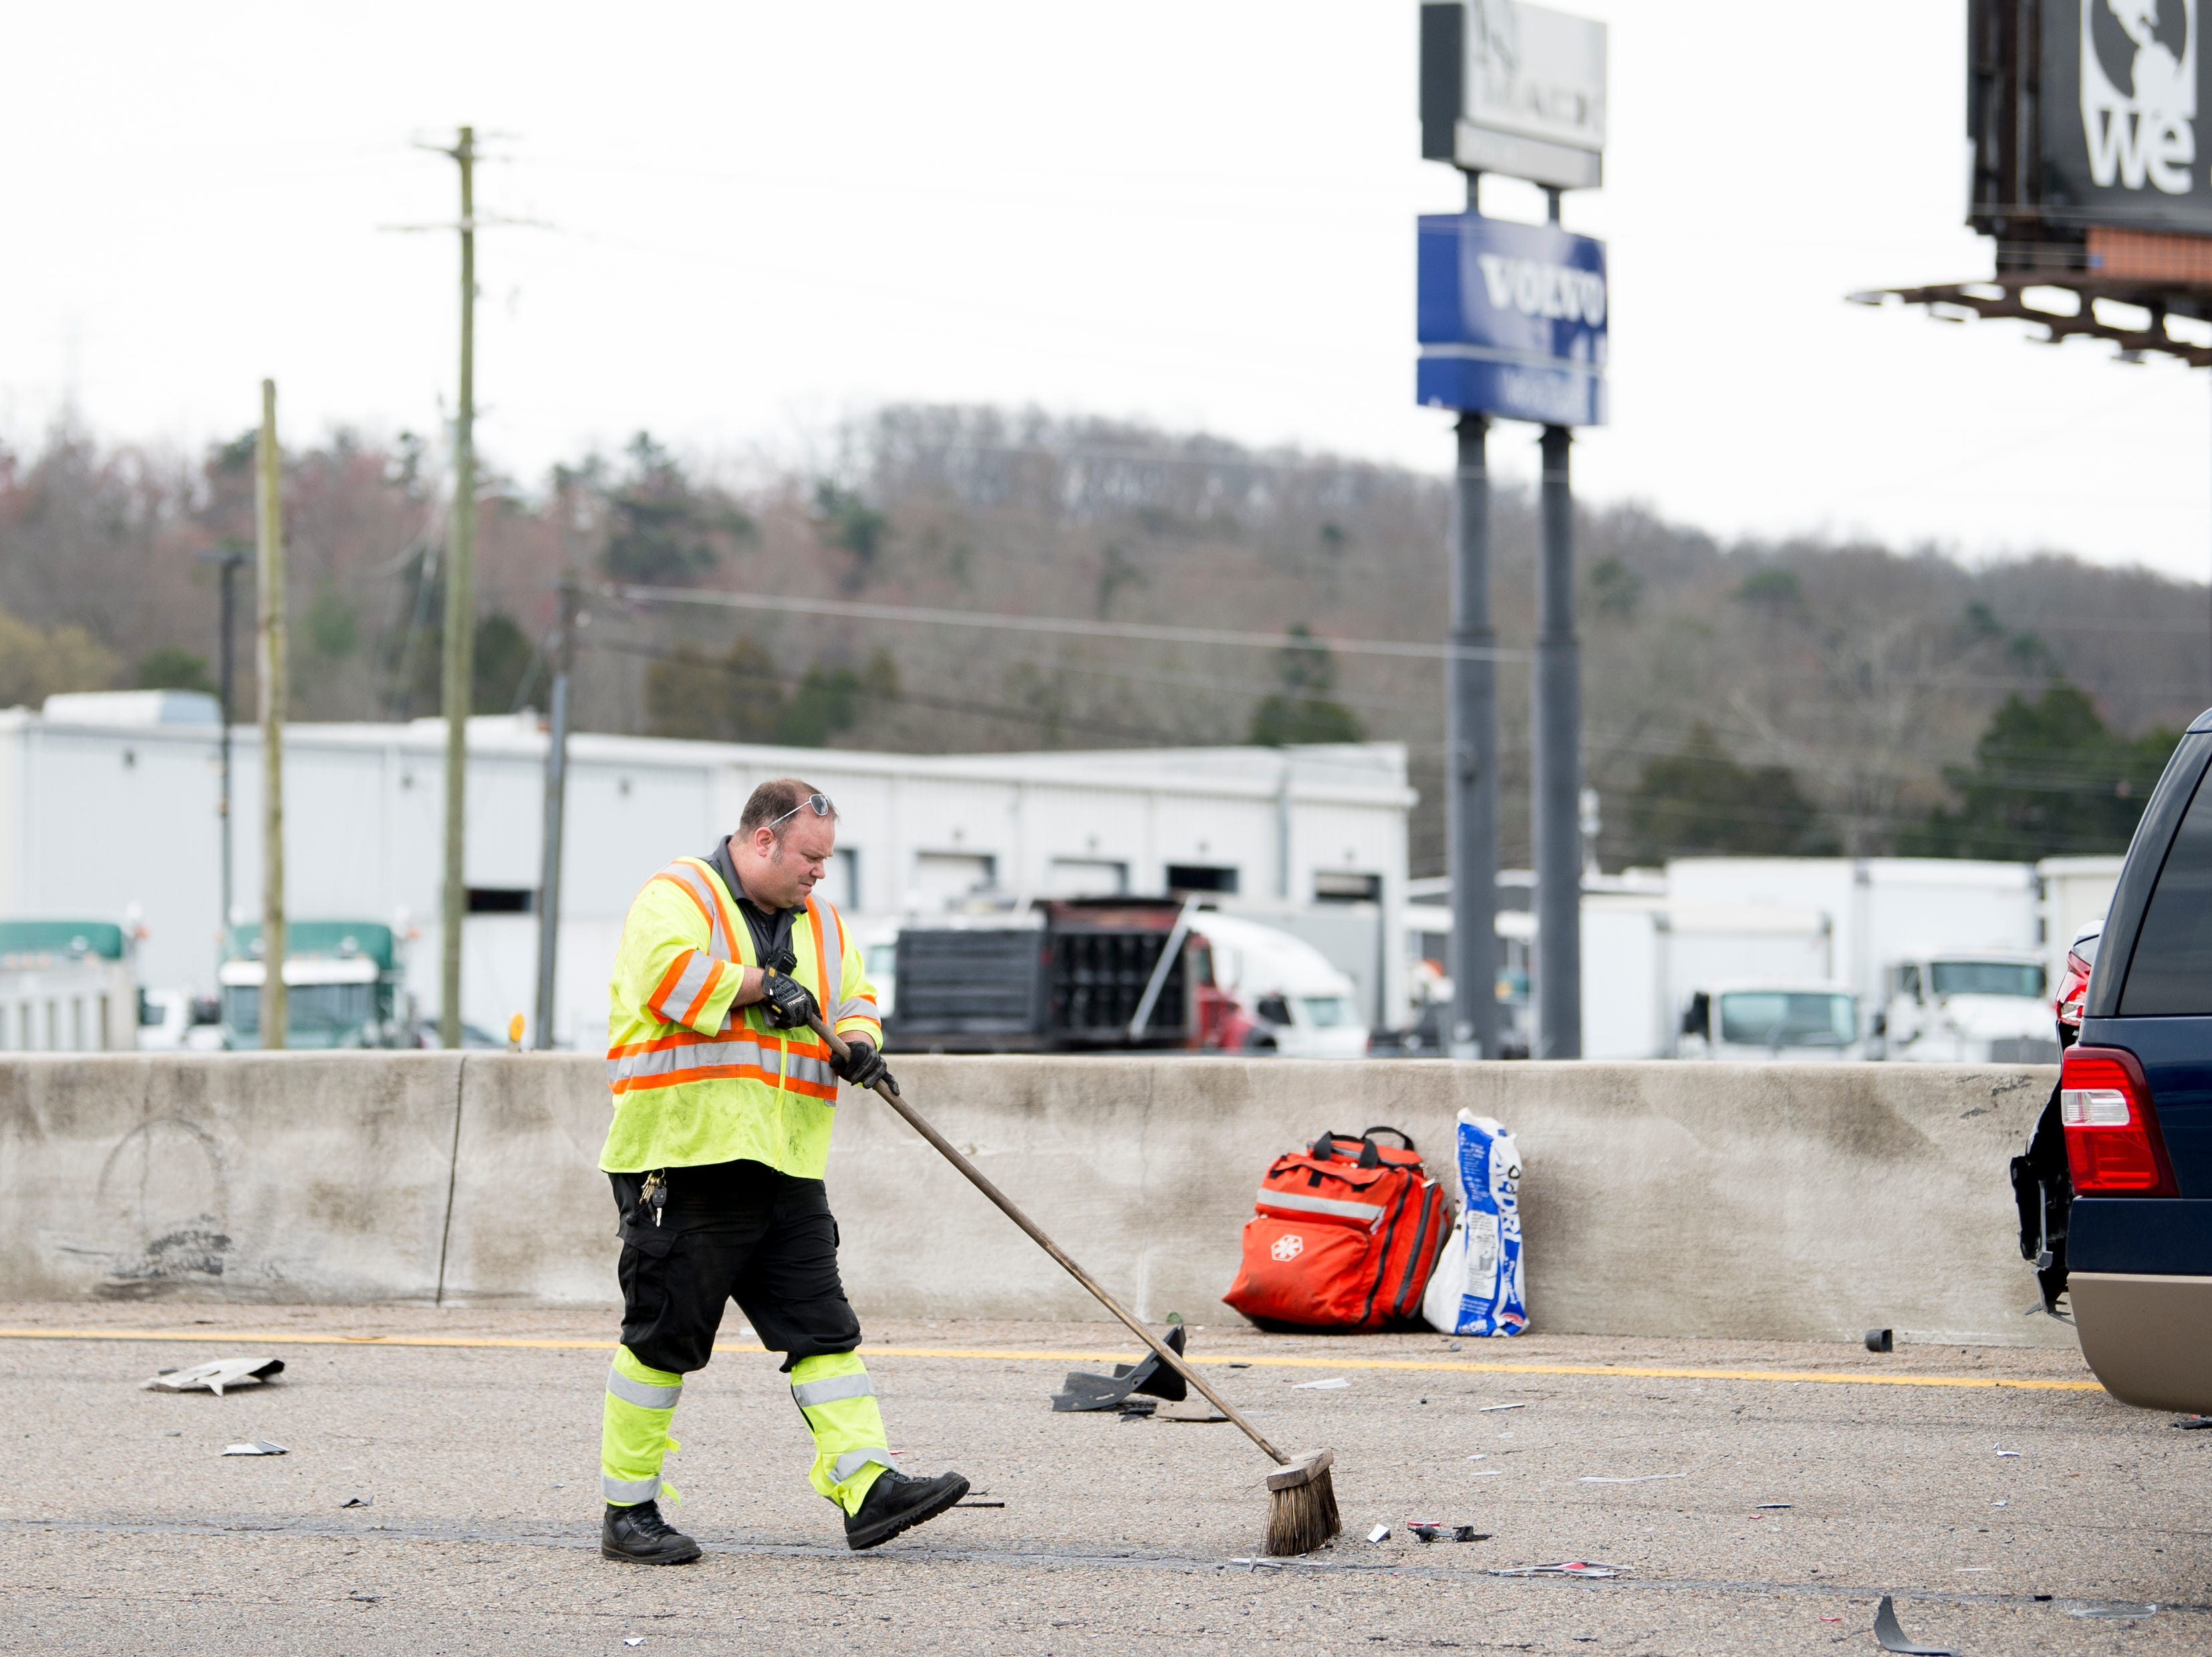 A first responder sweeps up debris at the scene of a multiple vehicle pileup on I-75 northbound near the Callahan Drive exit in Knoxville, Tennessee on Thursday, March 14, 2019. The crash sent several to the hospital and backed up traffic to the I-640 interchange.